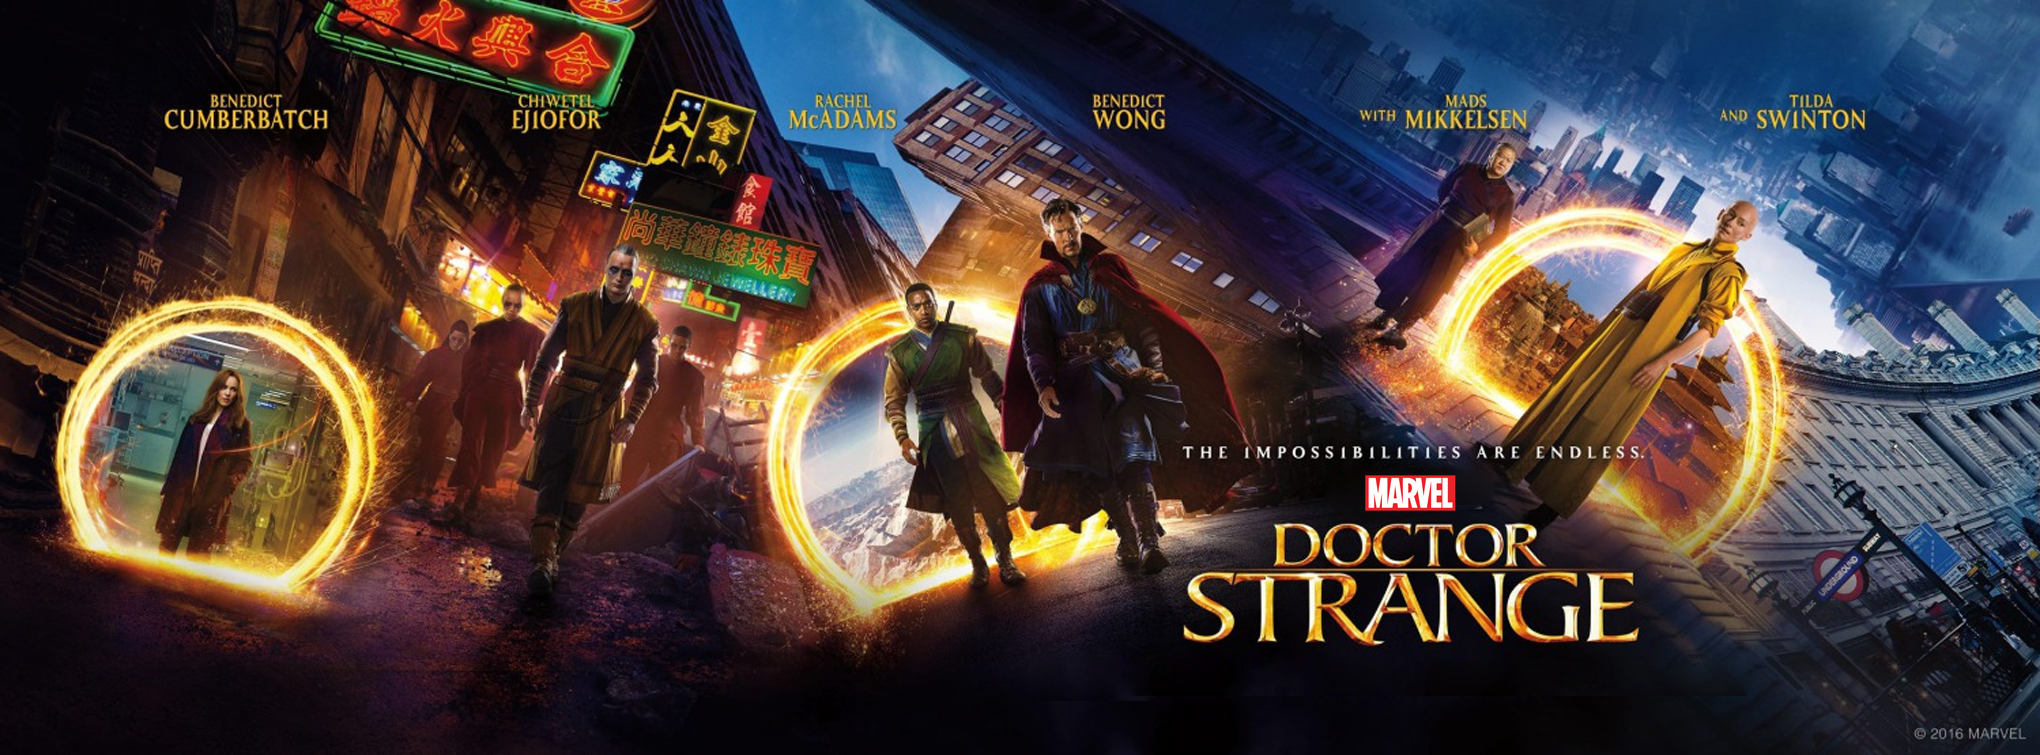 Doctor-Strange-Trailer-and-Info